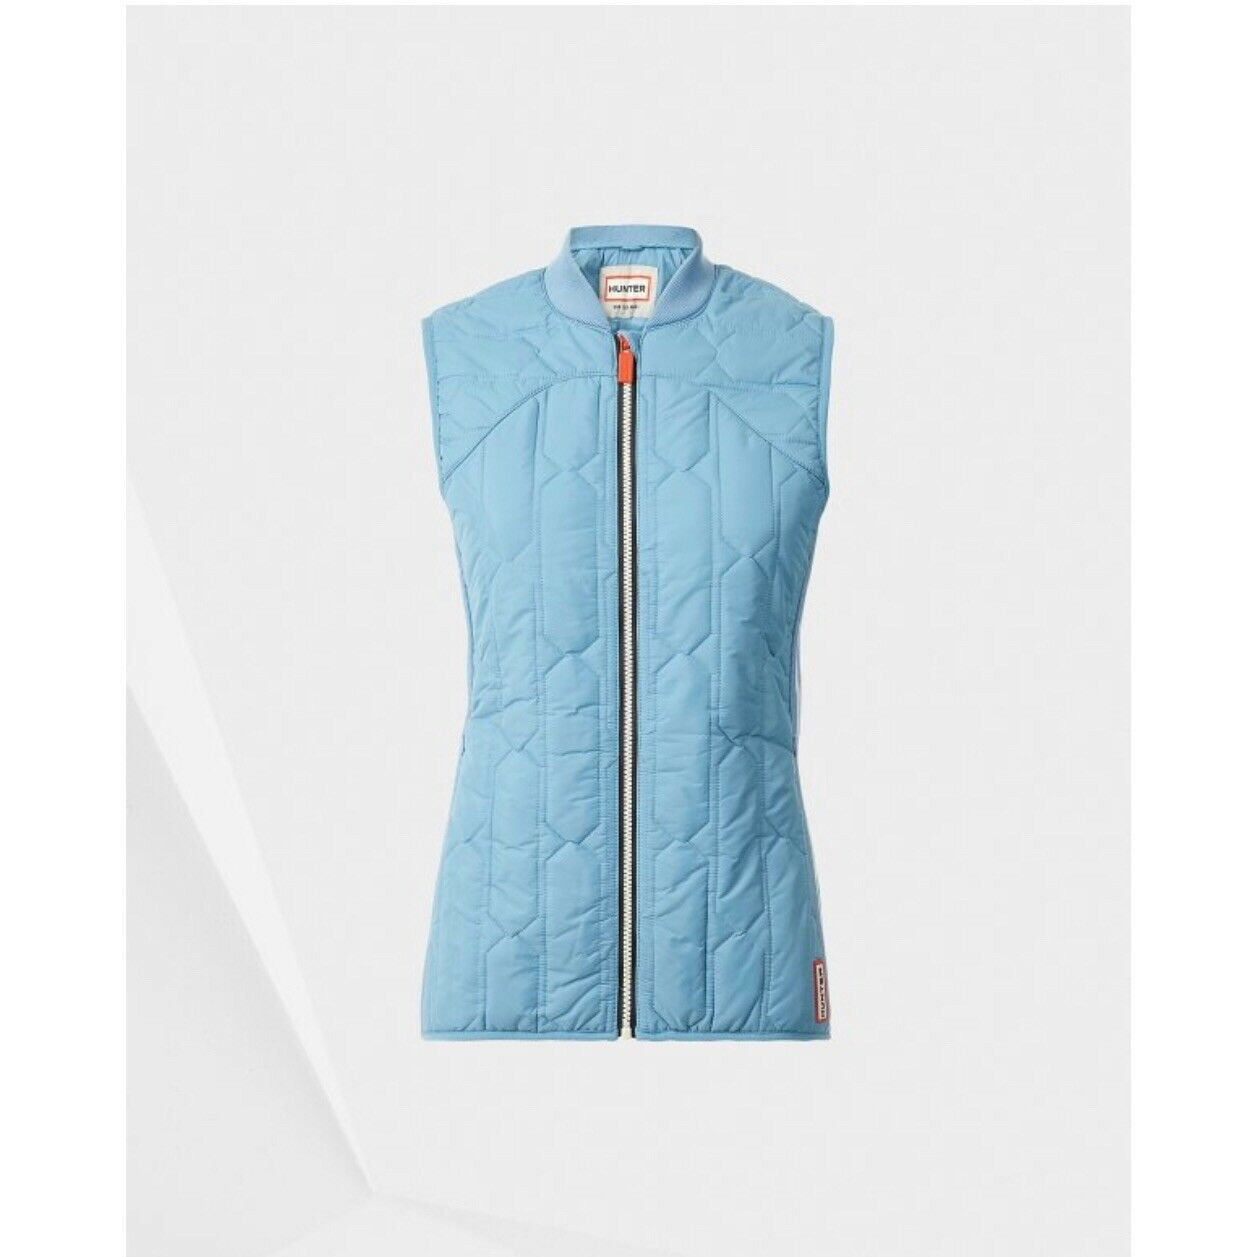 Hunter Original Midlayer Gilet Vest XS Pale bluee